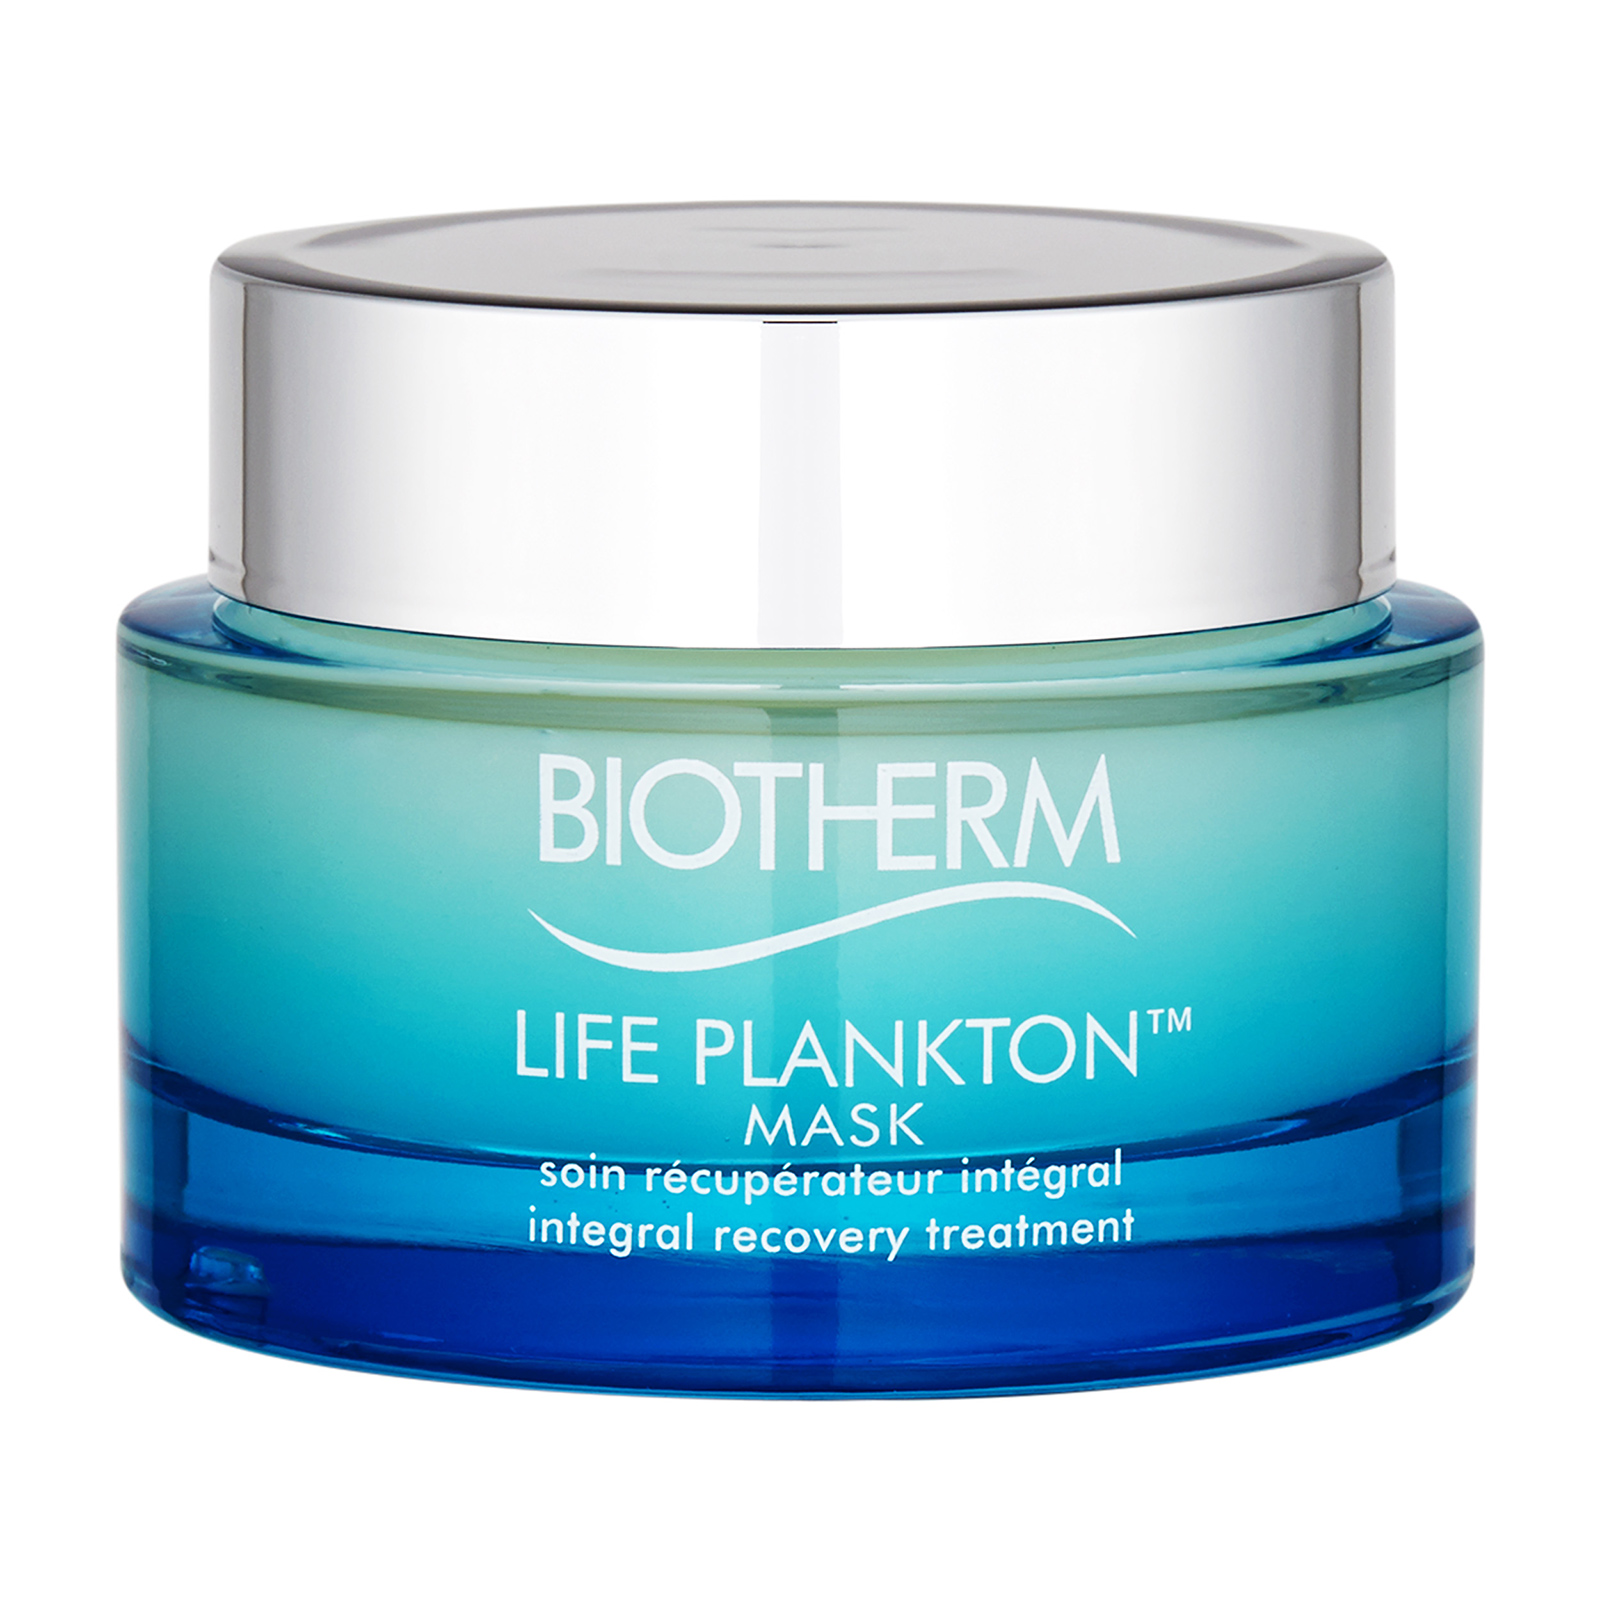 Biotherm Life Plankton  Mask Integral Recovery Treatment (All Skin Types Even Sensitive) 2.53oz, 75ml